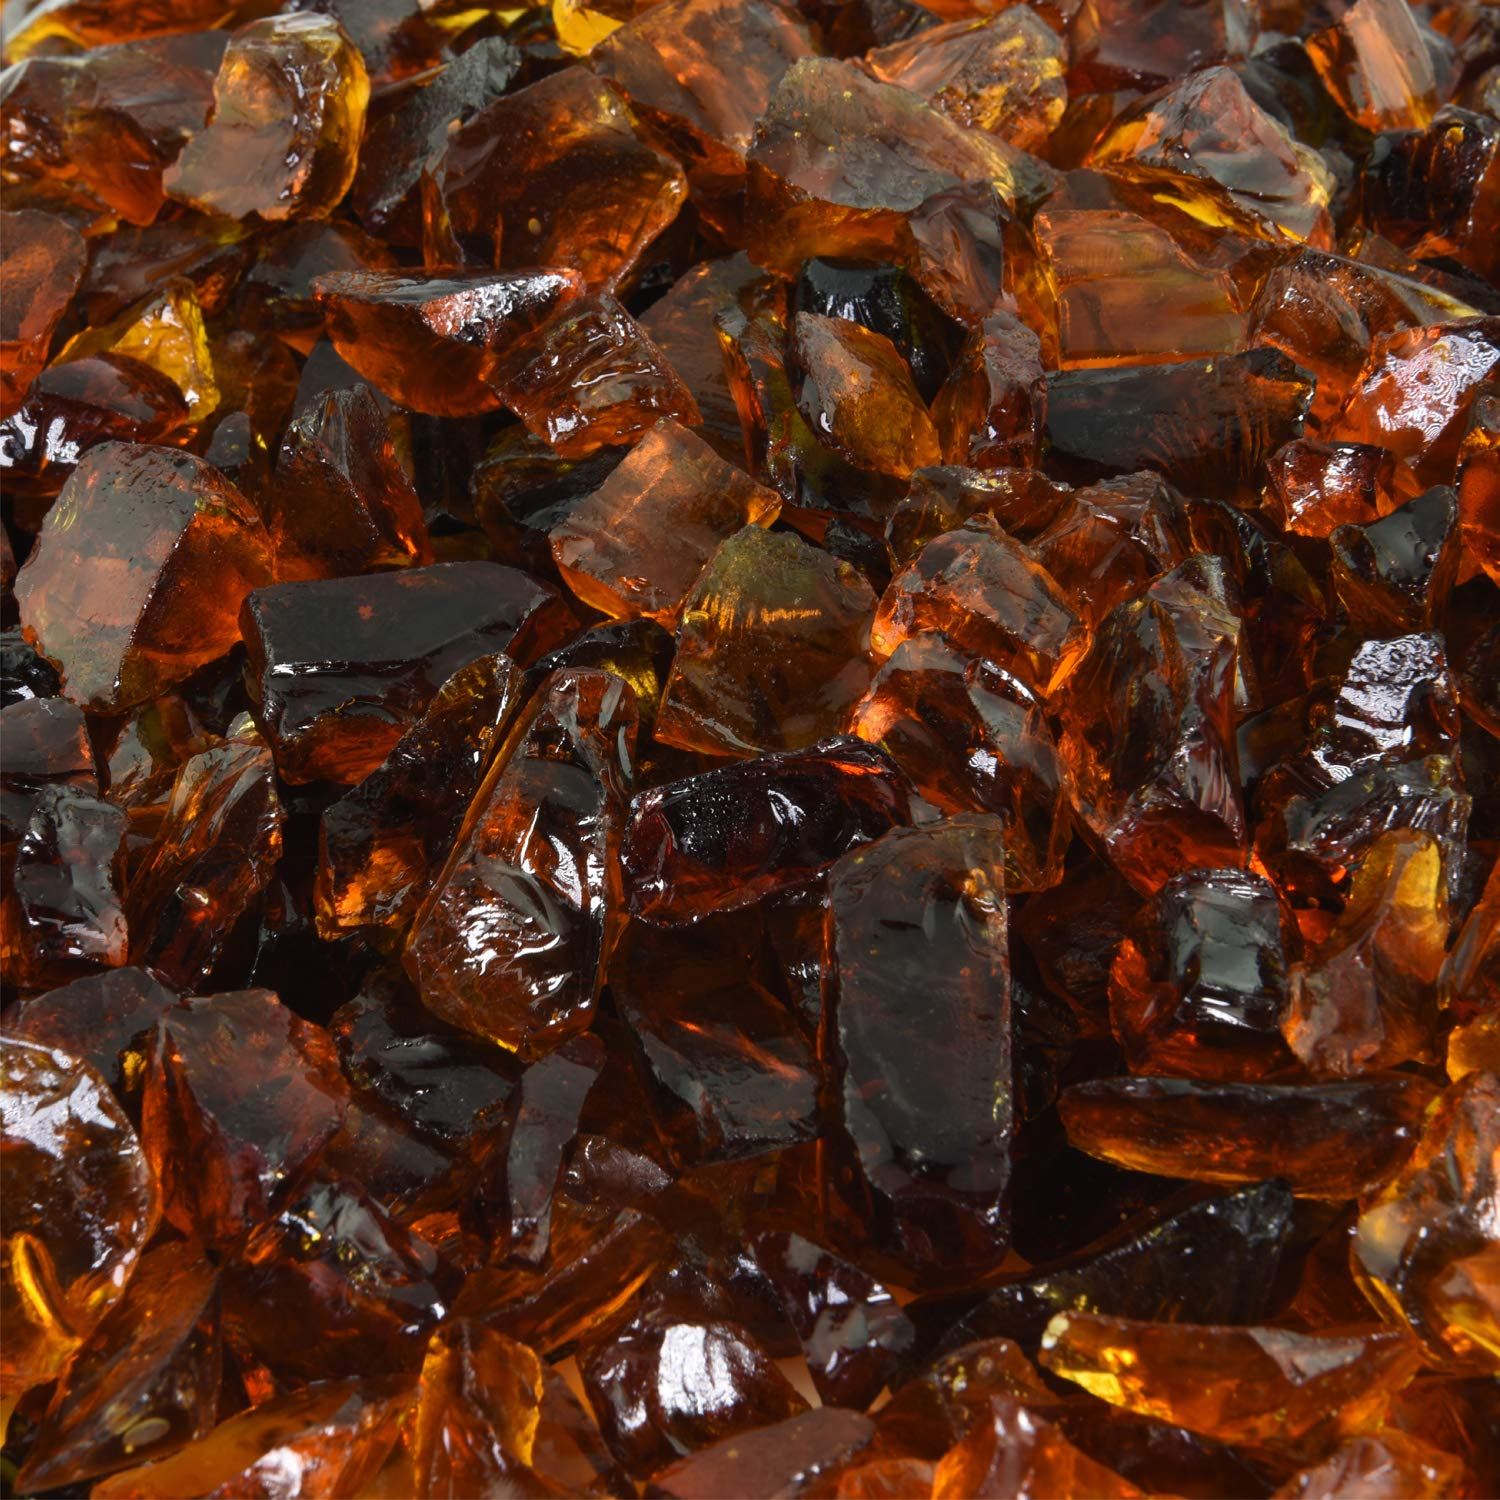 Cowboy Brown - Crushed Fire Glass for Indoor and Outdoor Fire Pits or Fireplaces | 10 Pounds | 1/2 Inch - 3/4 Inch